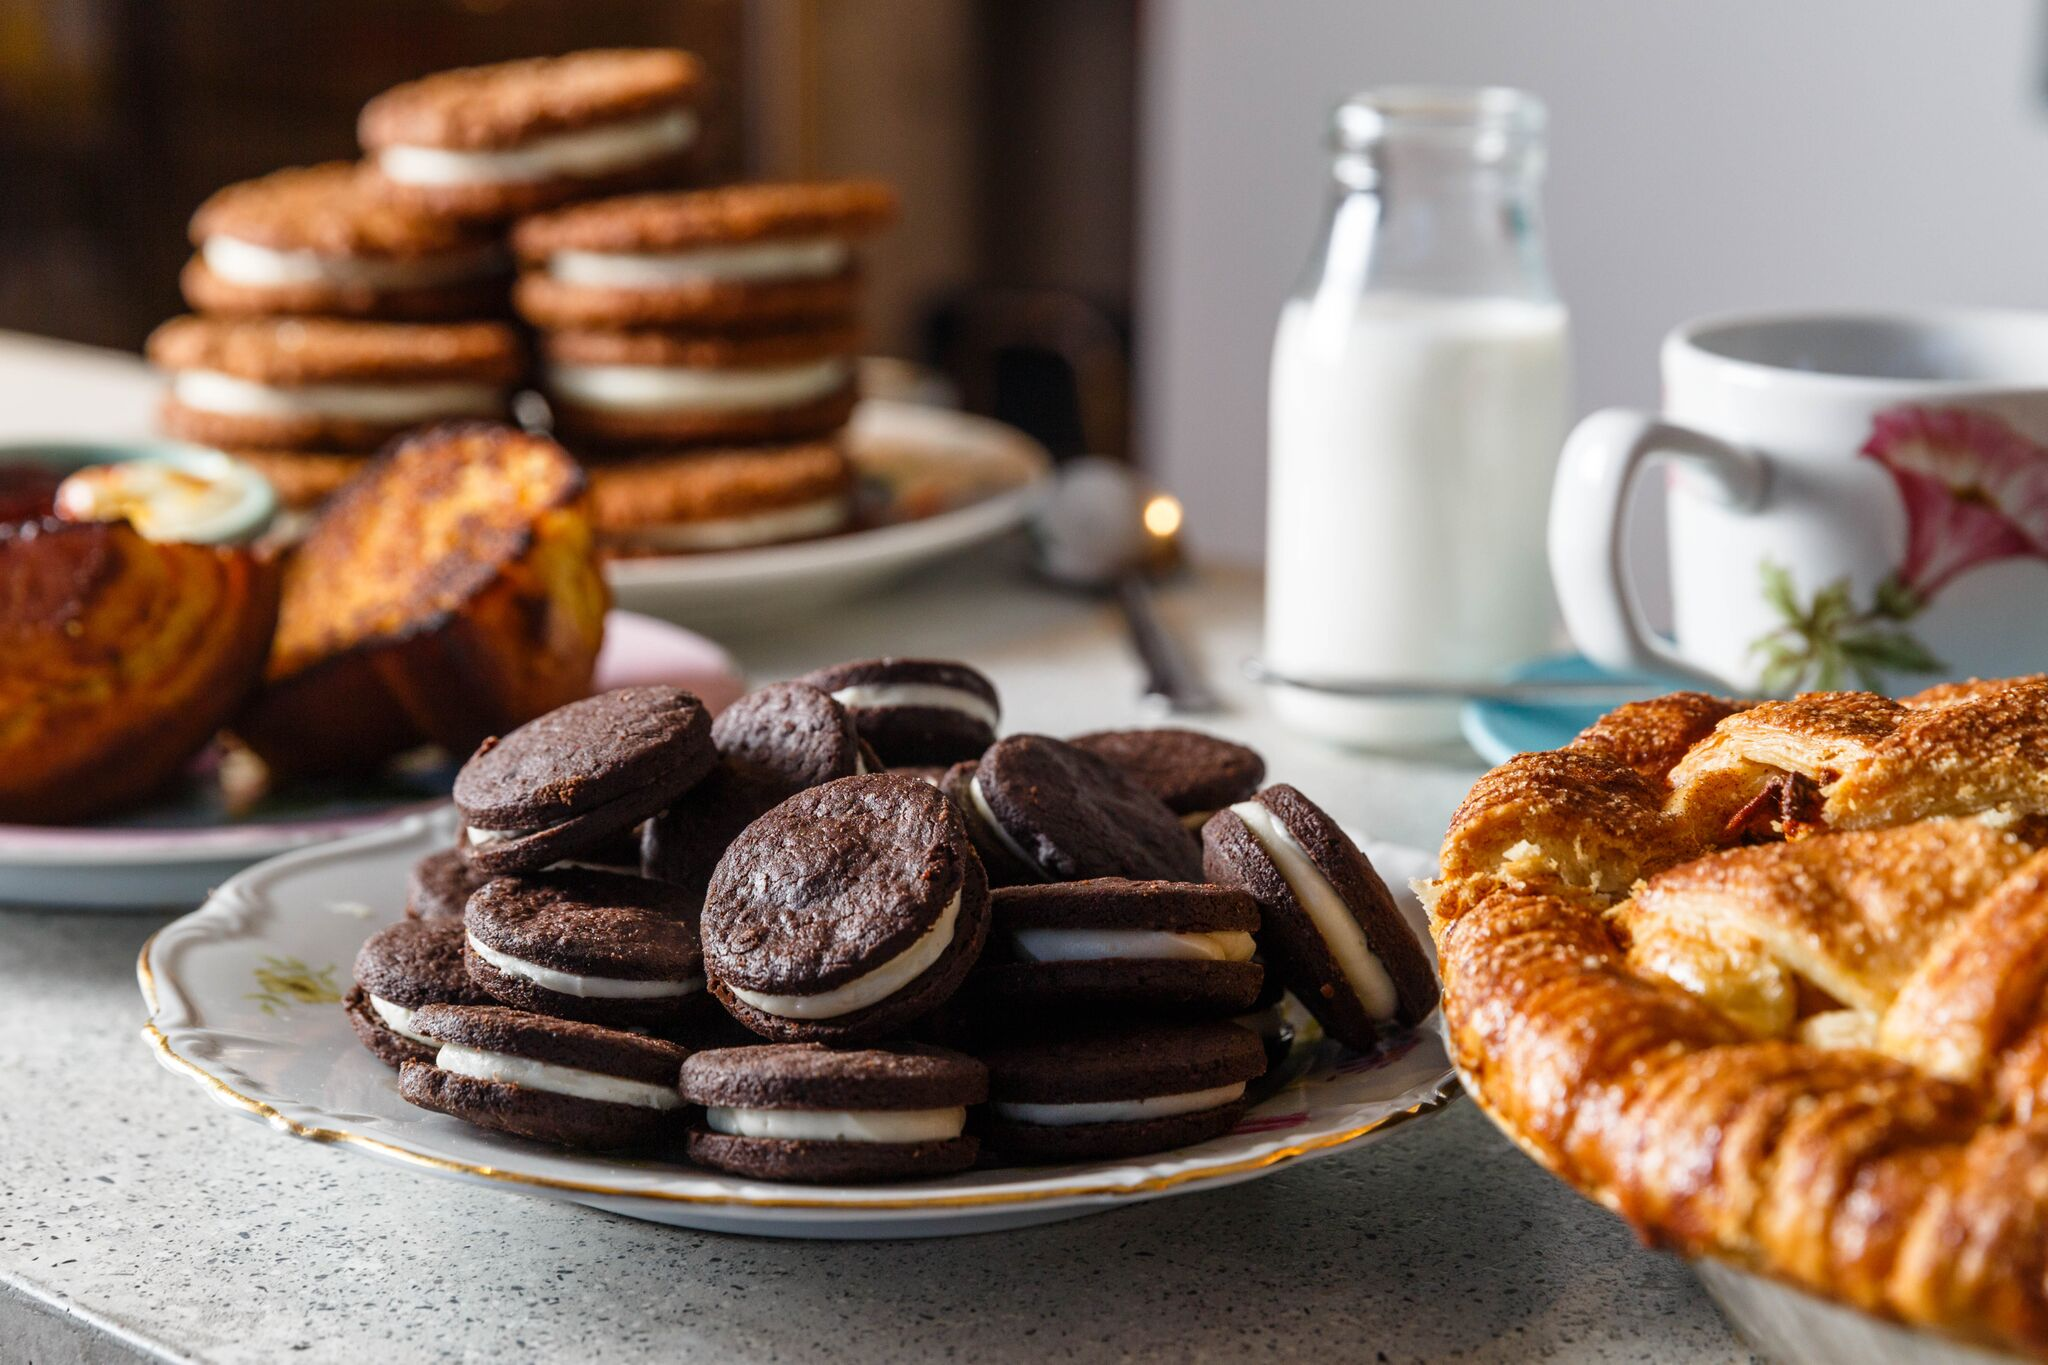 Pastries at Gertie